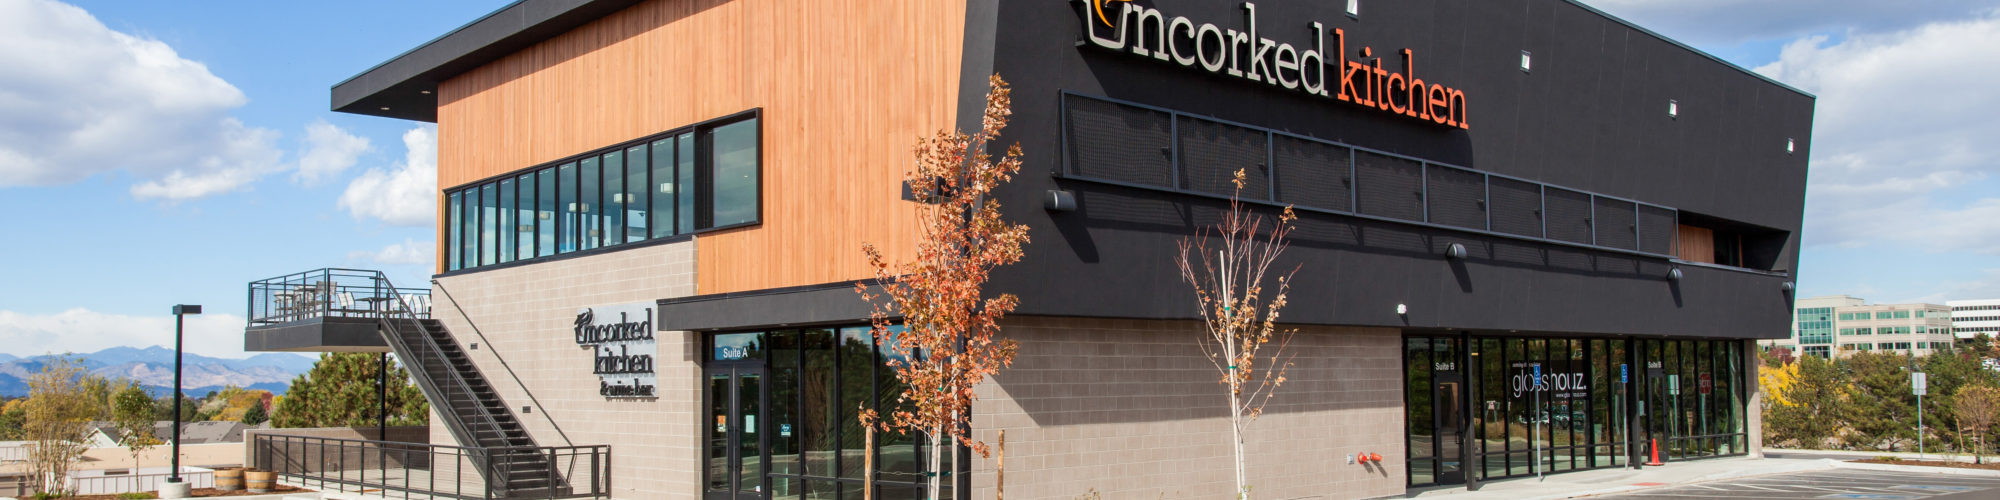 Uncorked Exterior Final01